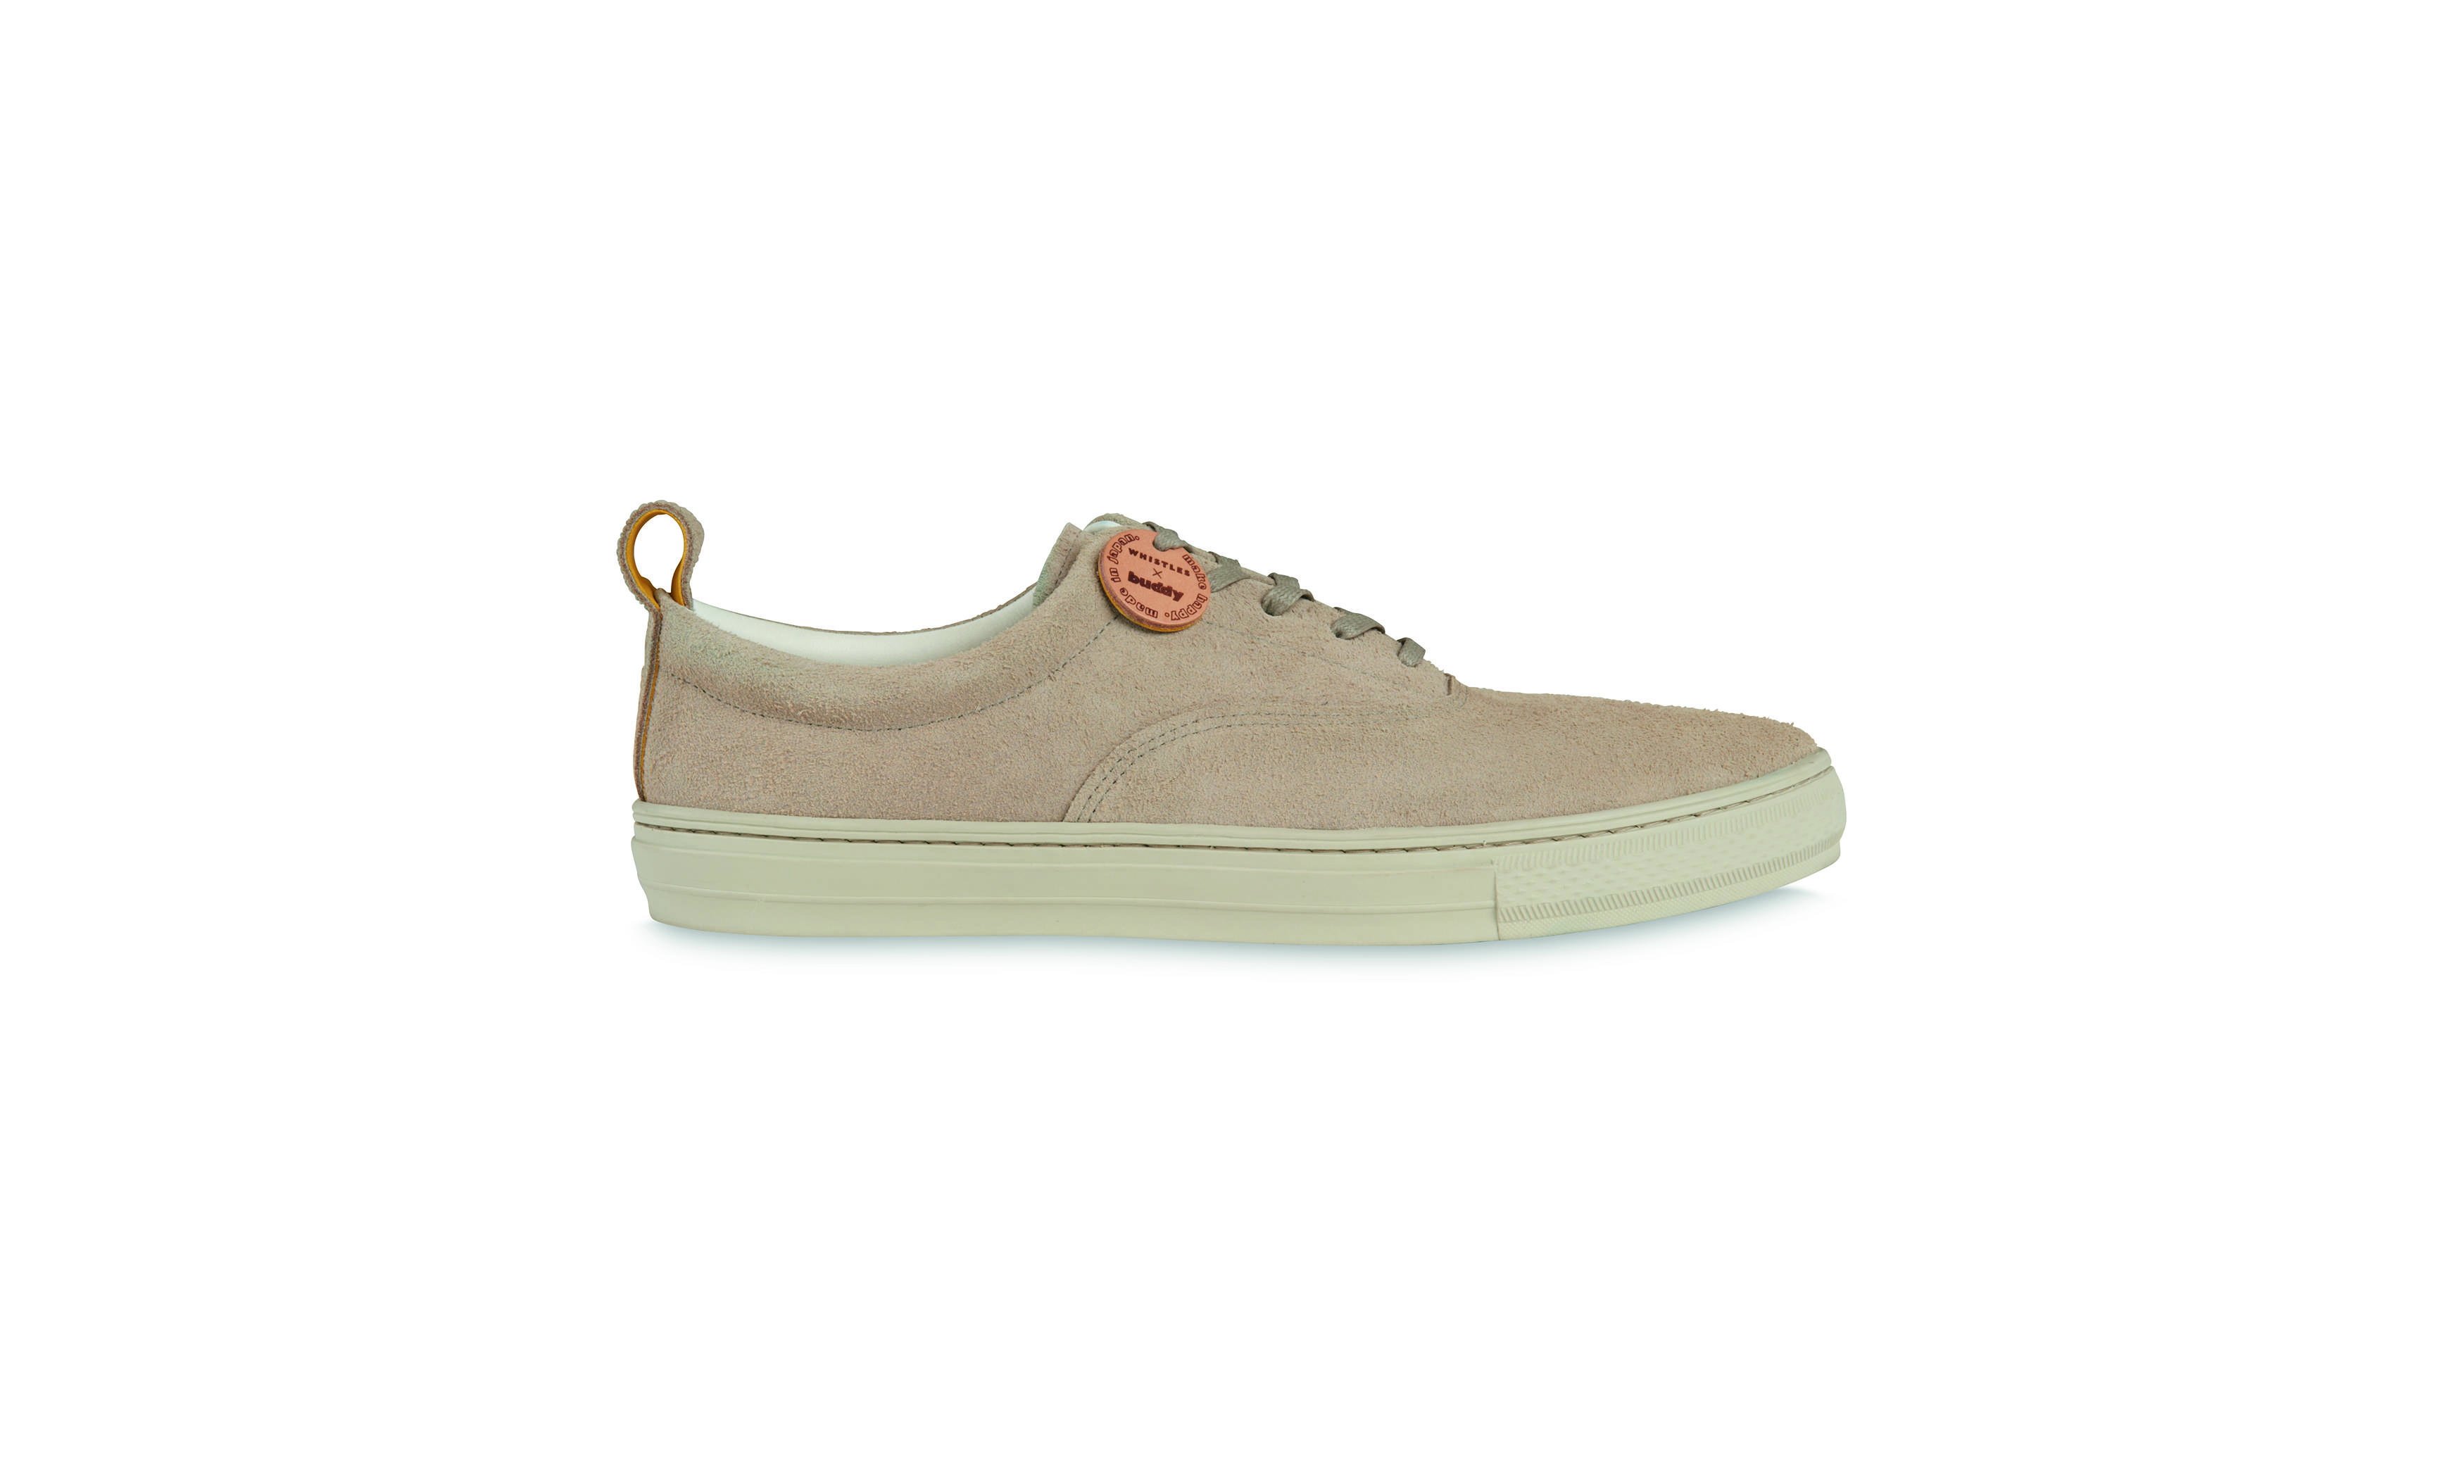 whistles-ronnie-suede-trainers-pale-grey_03.jpg